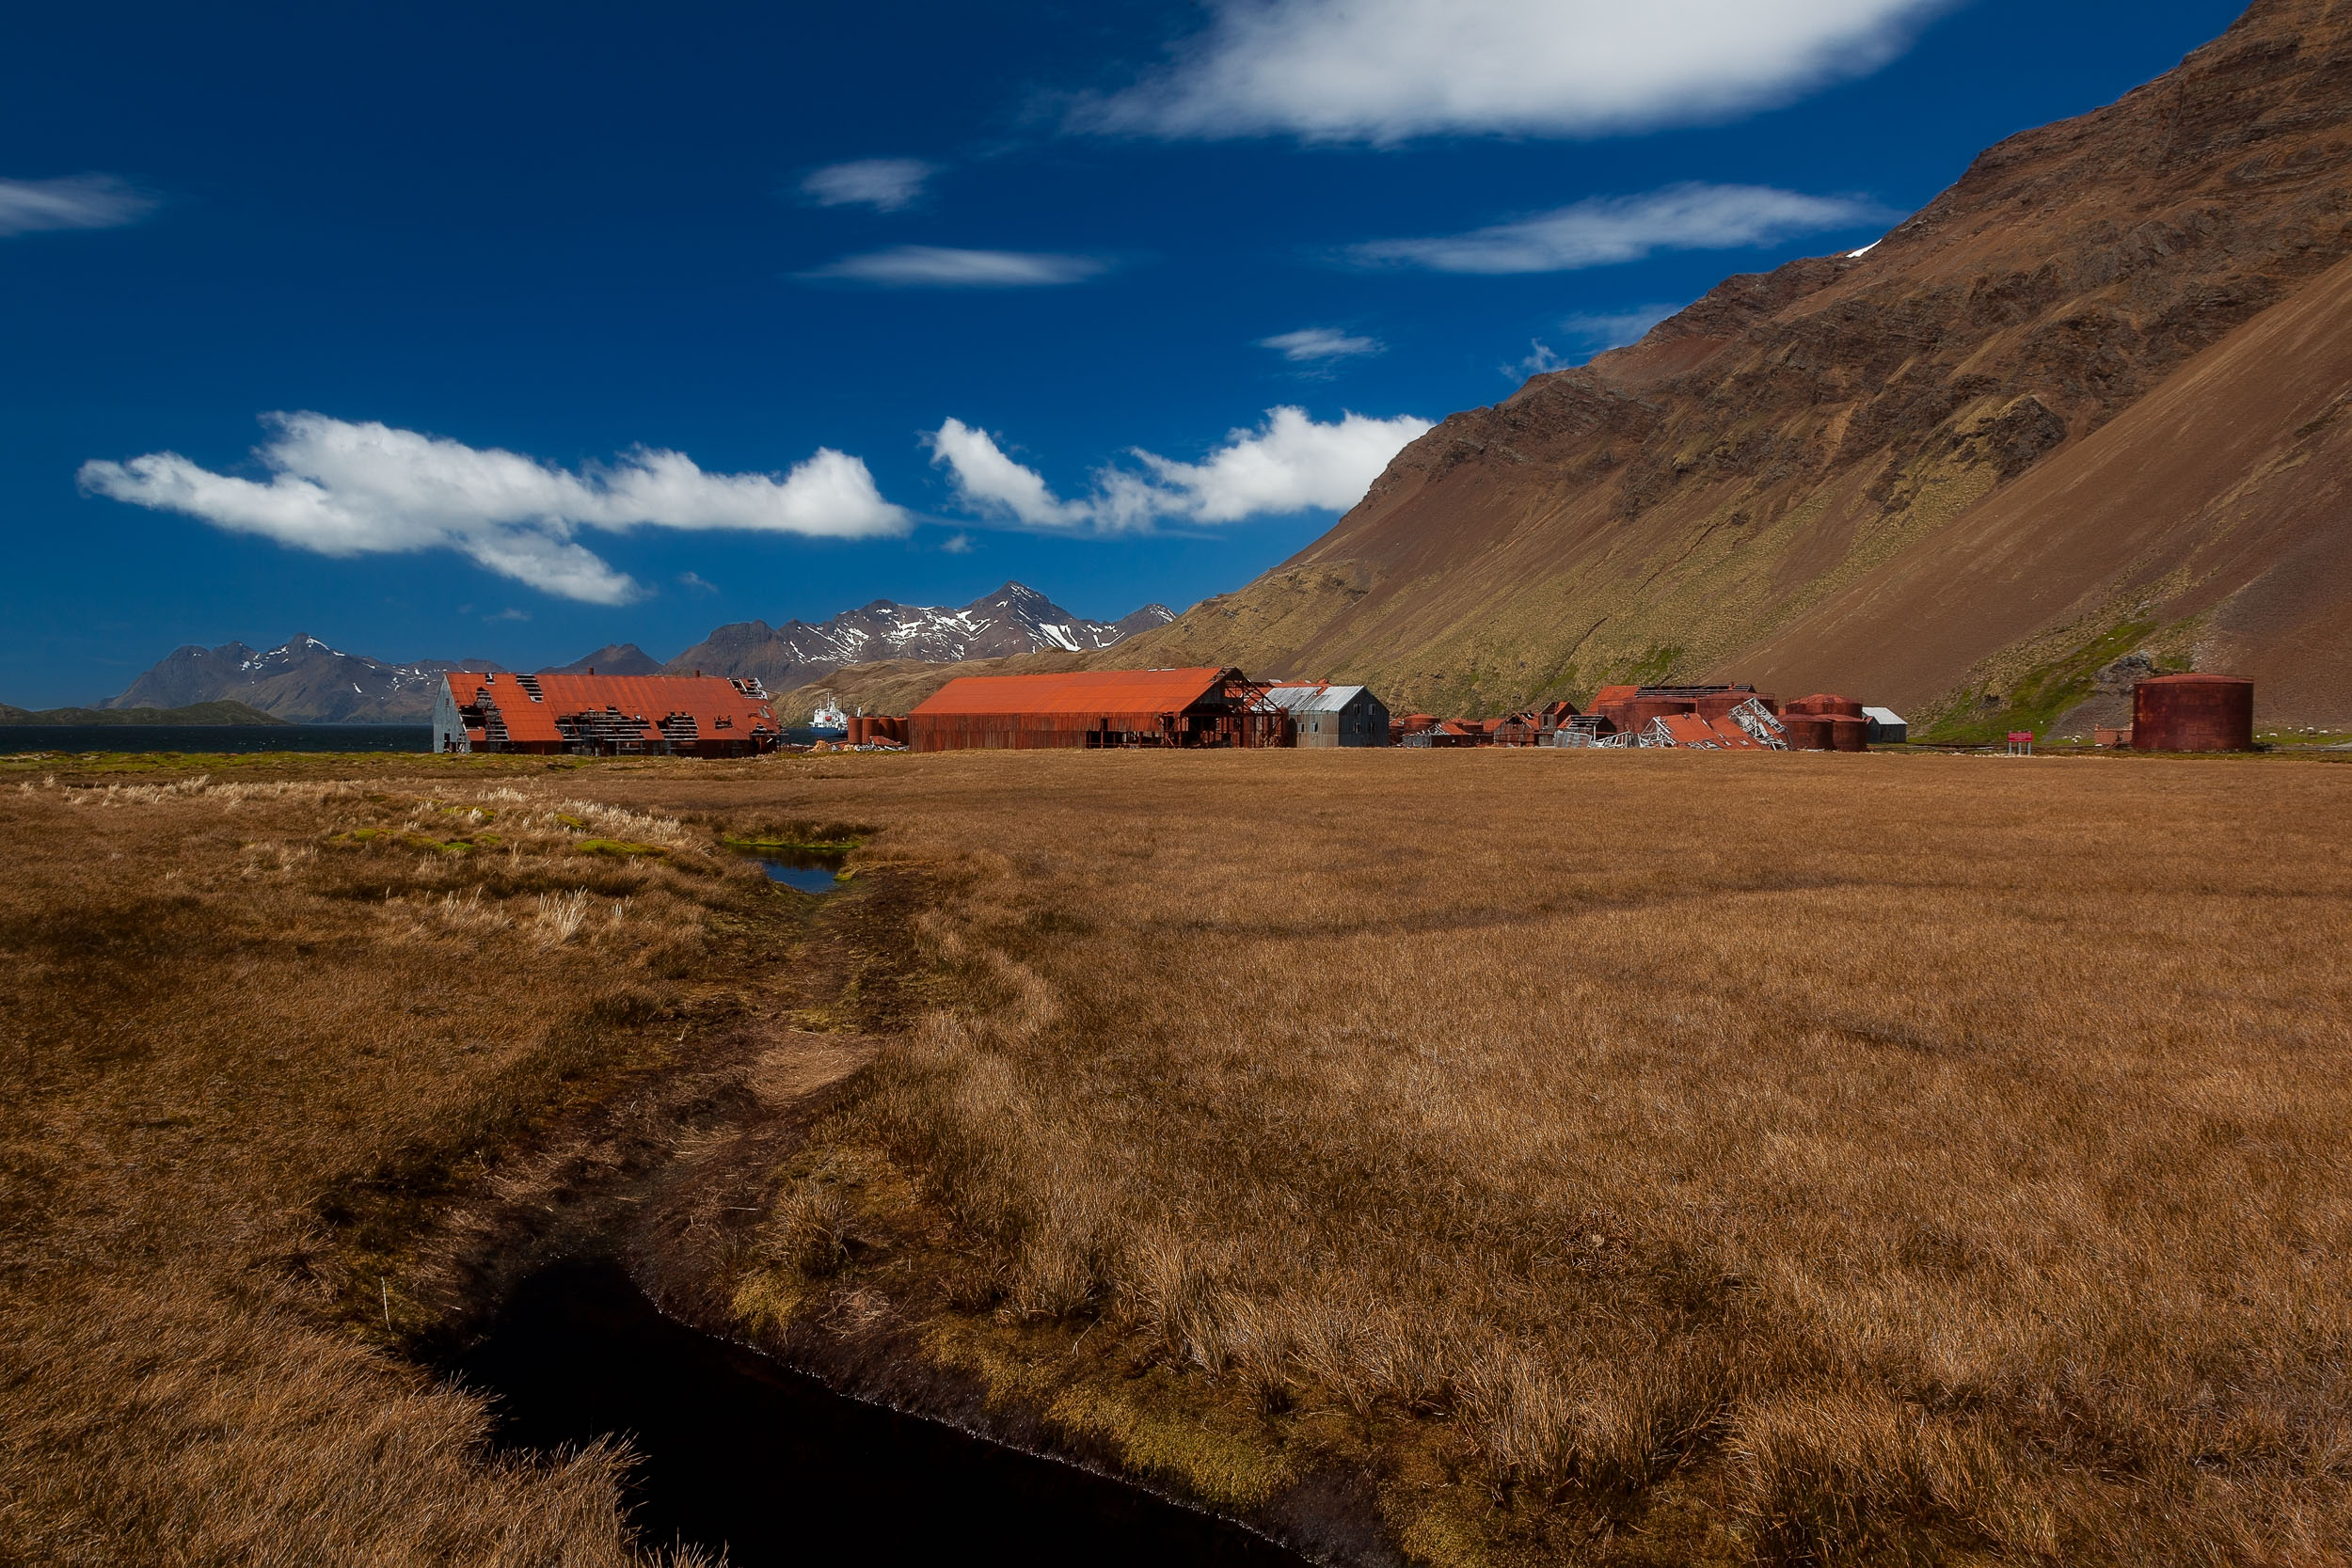 A beautiful day with a view towards the back of the Stromness Wailing Station on South Georgia Island in the Southern Ocean